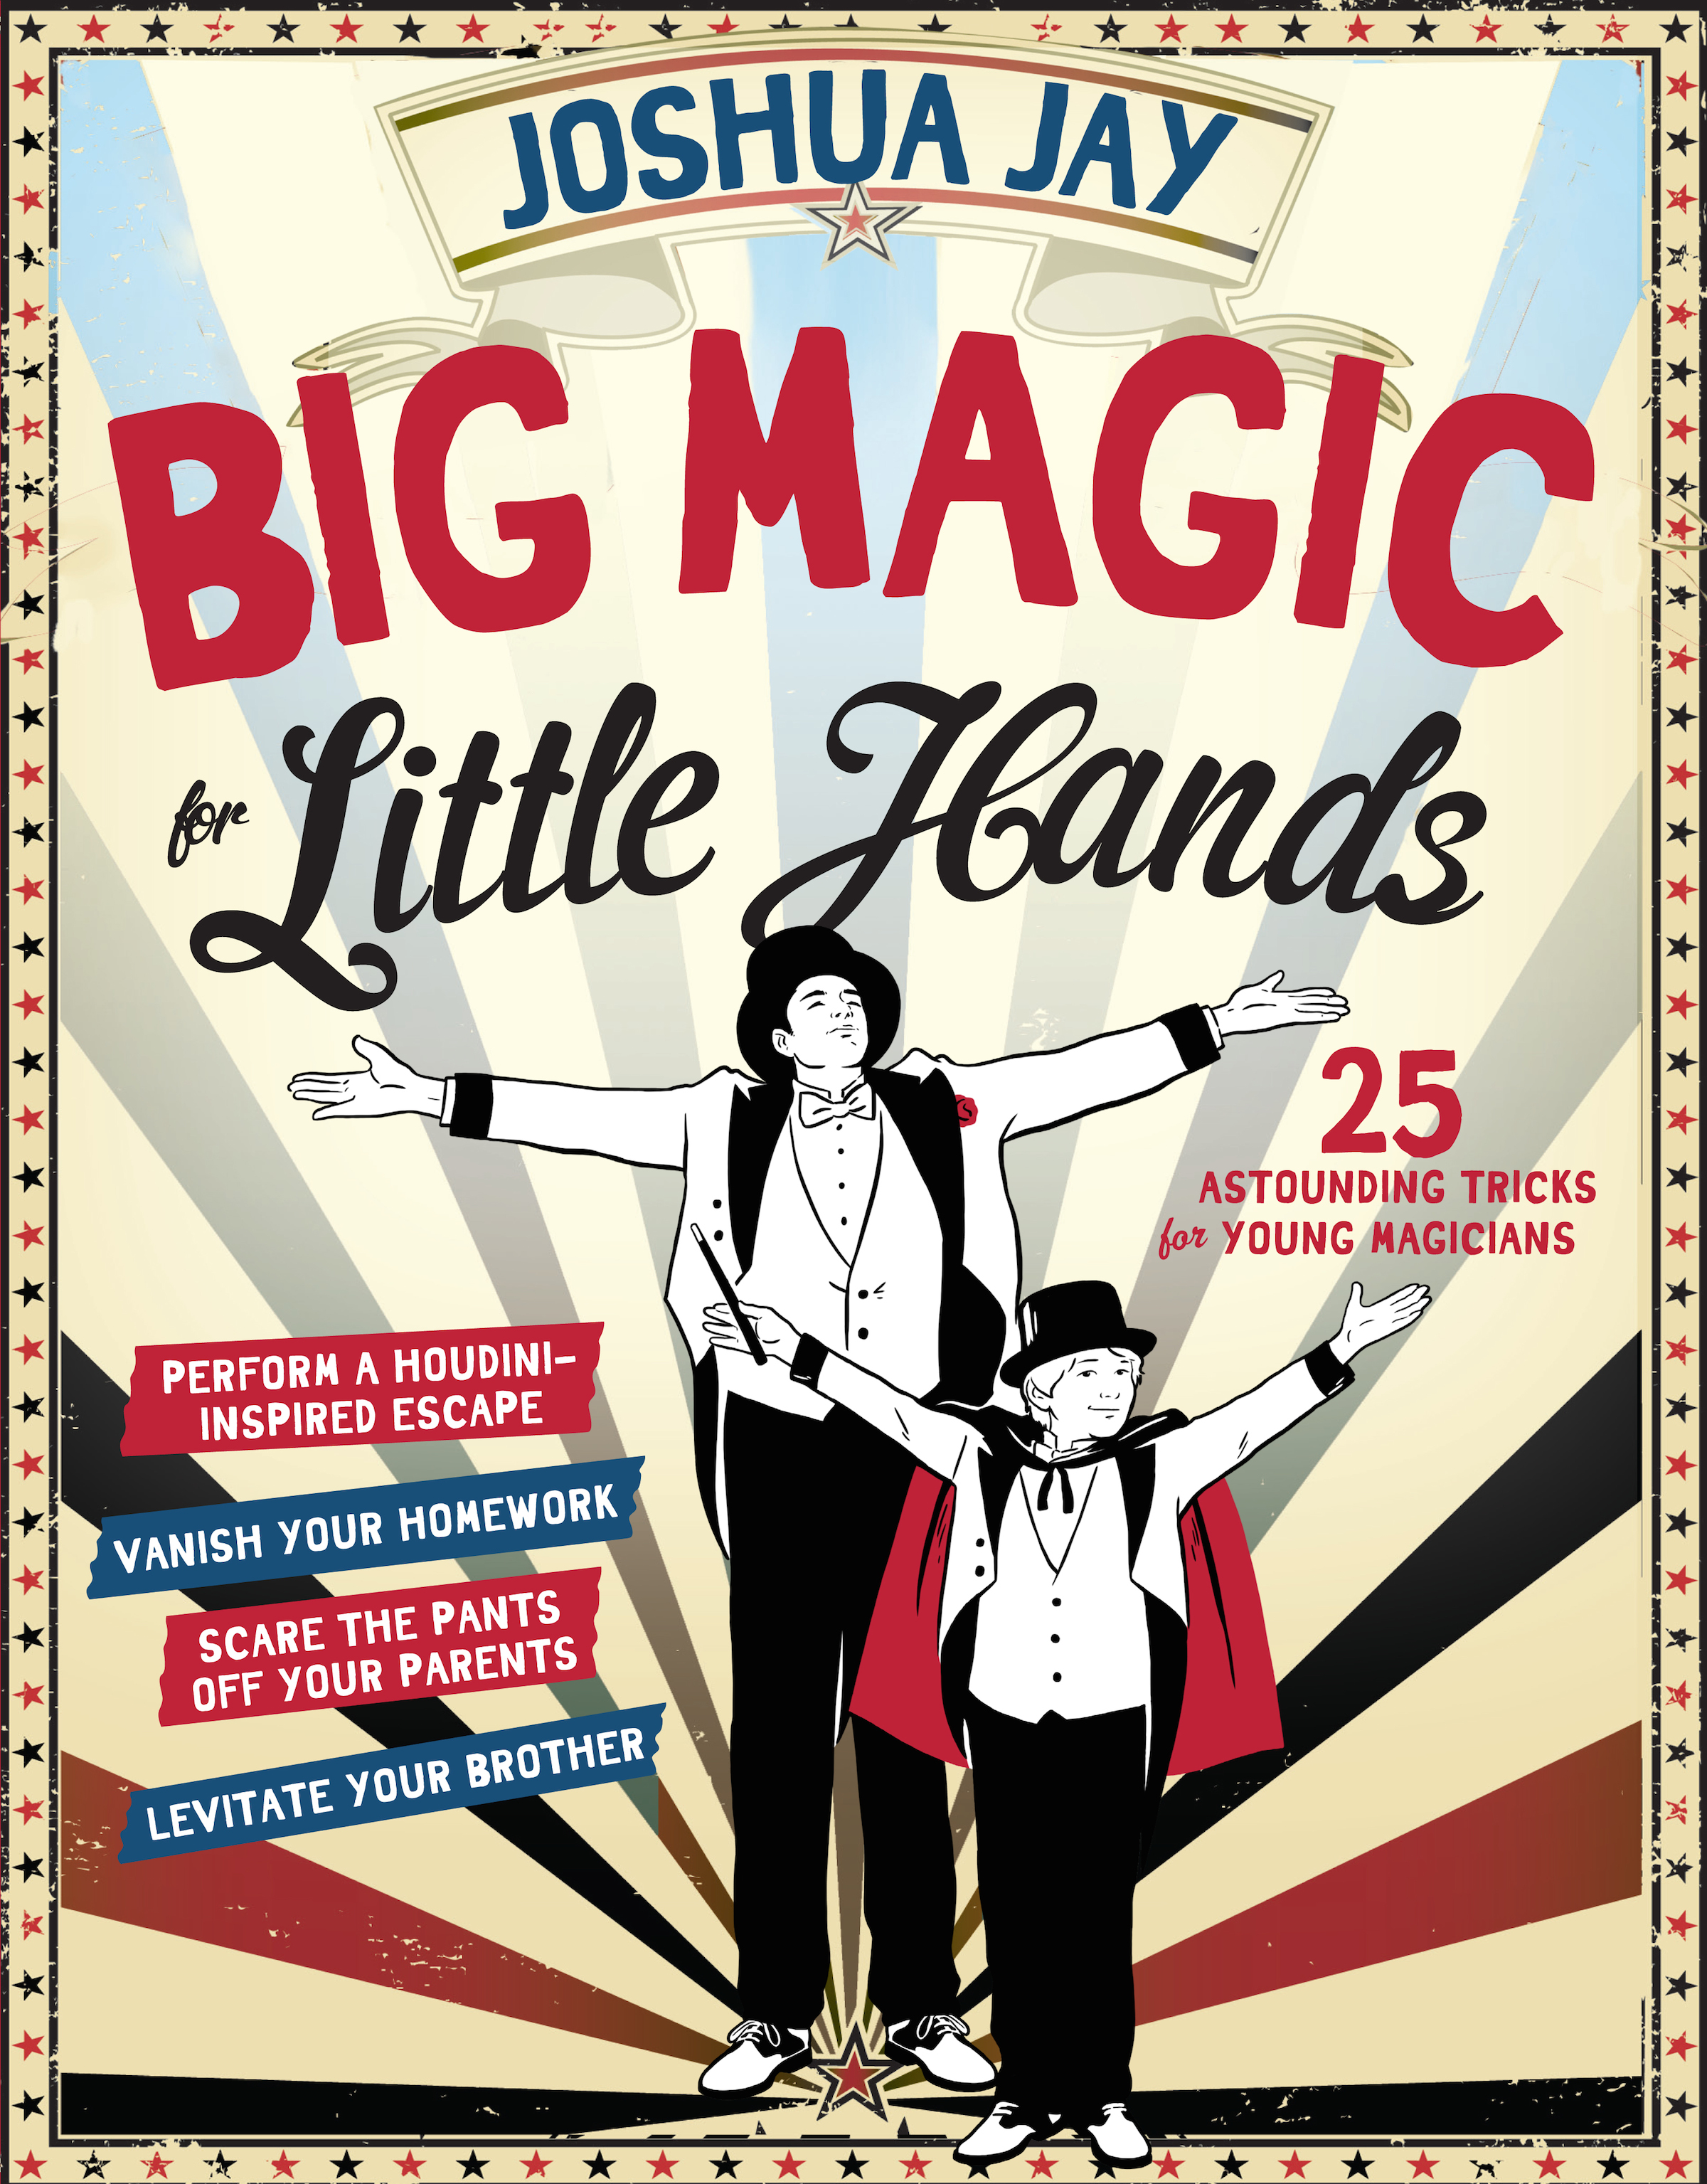 Big Magic for Little Hands - Joshua Jay